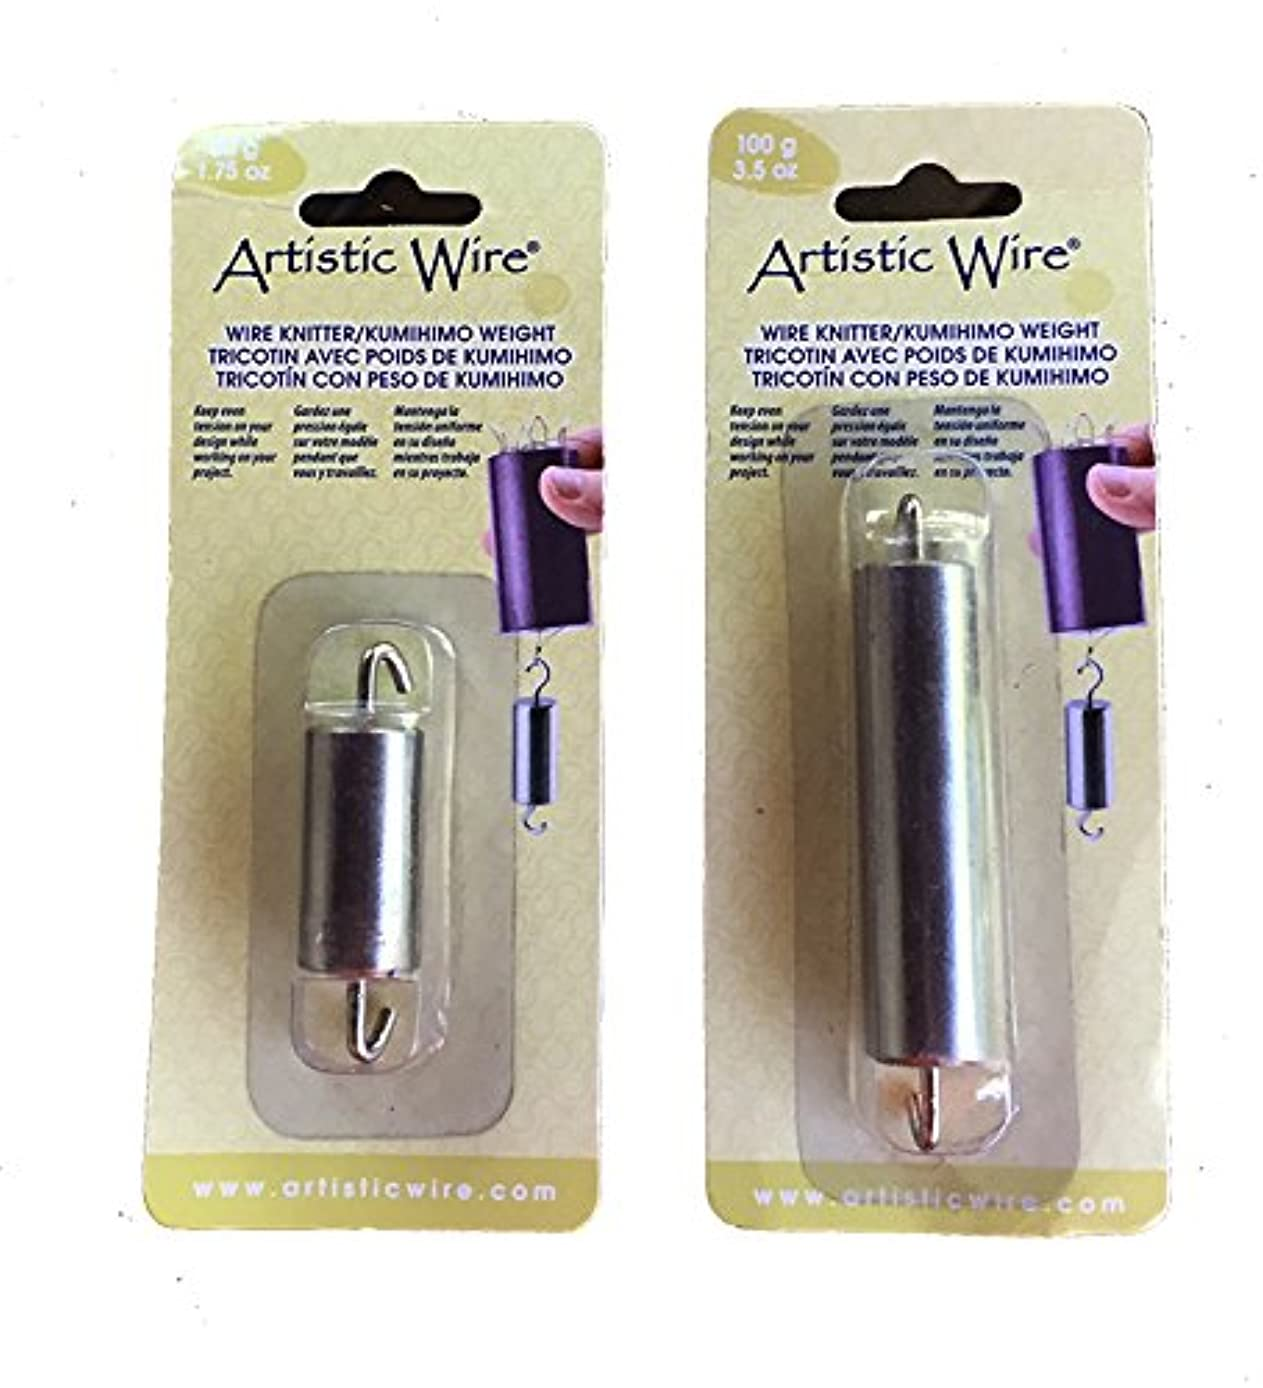 Beadalon Artistic Wire Knitter/Kumihimo Weights, Set of 2, 50g and 100g, Small and Large